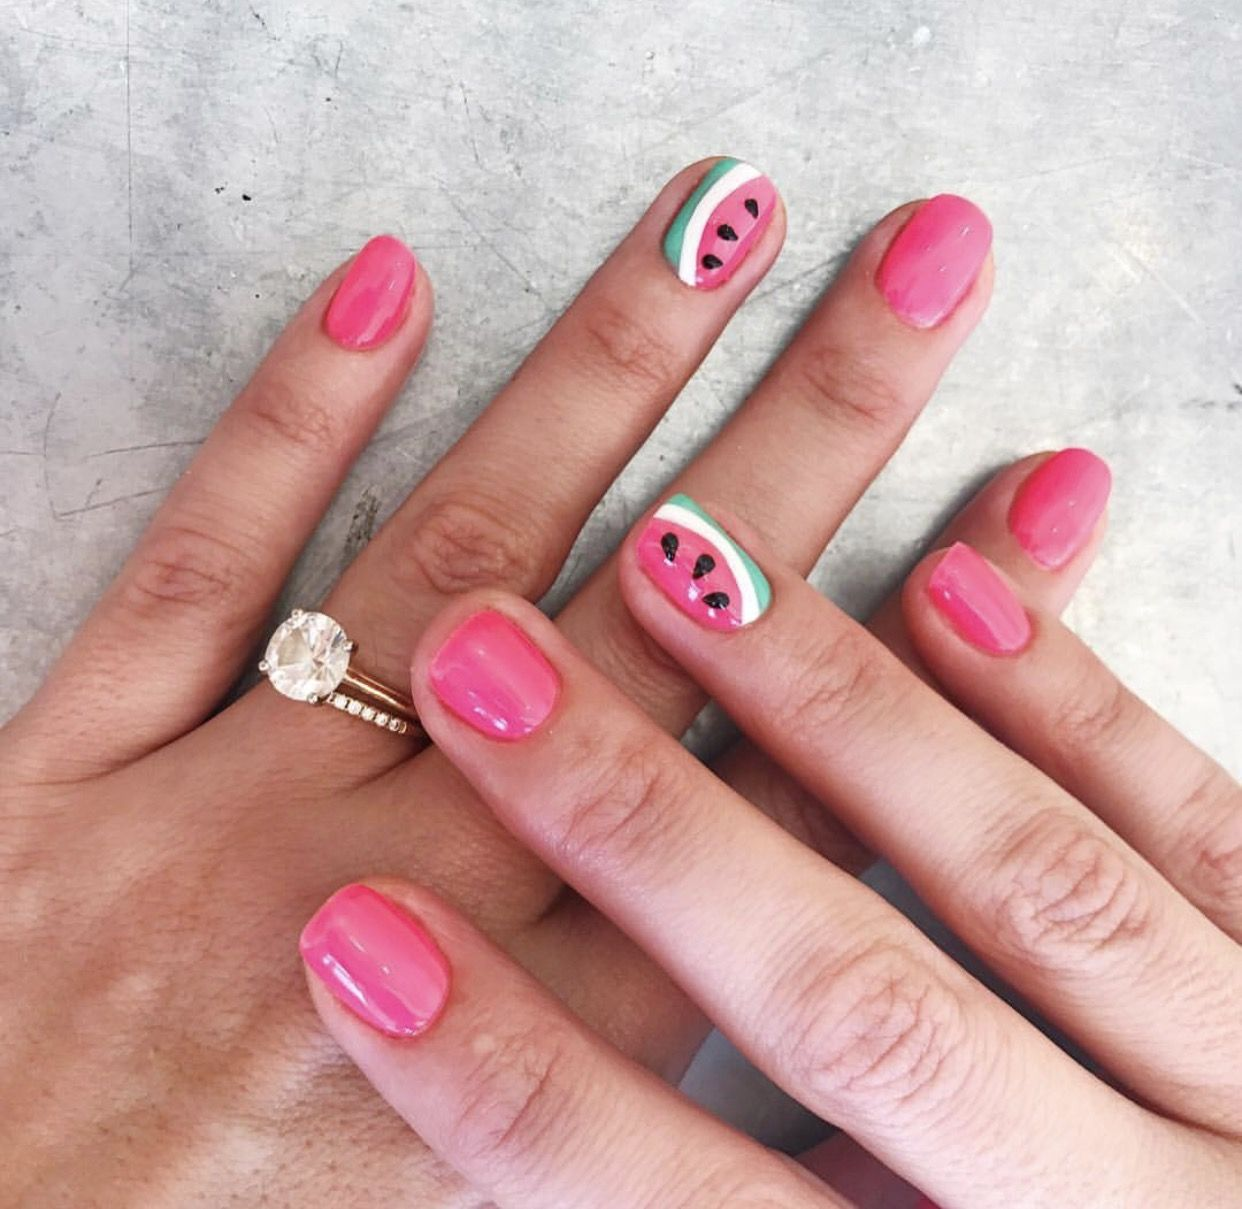 Olive and June (With images) | Fun nails, Nails, Olive and ...